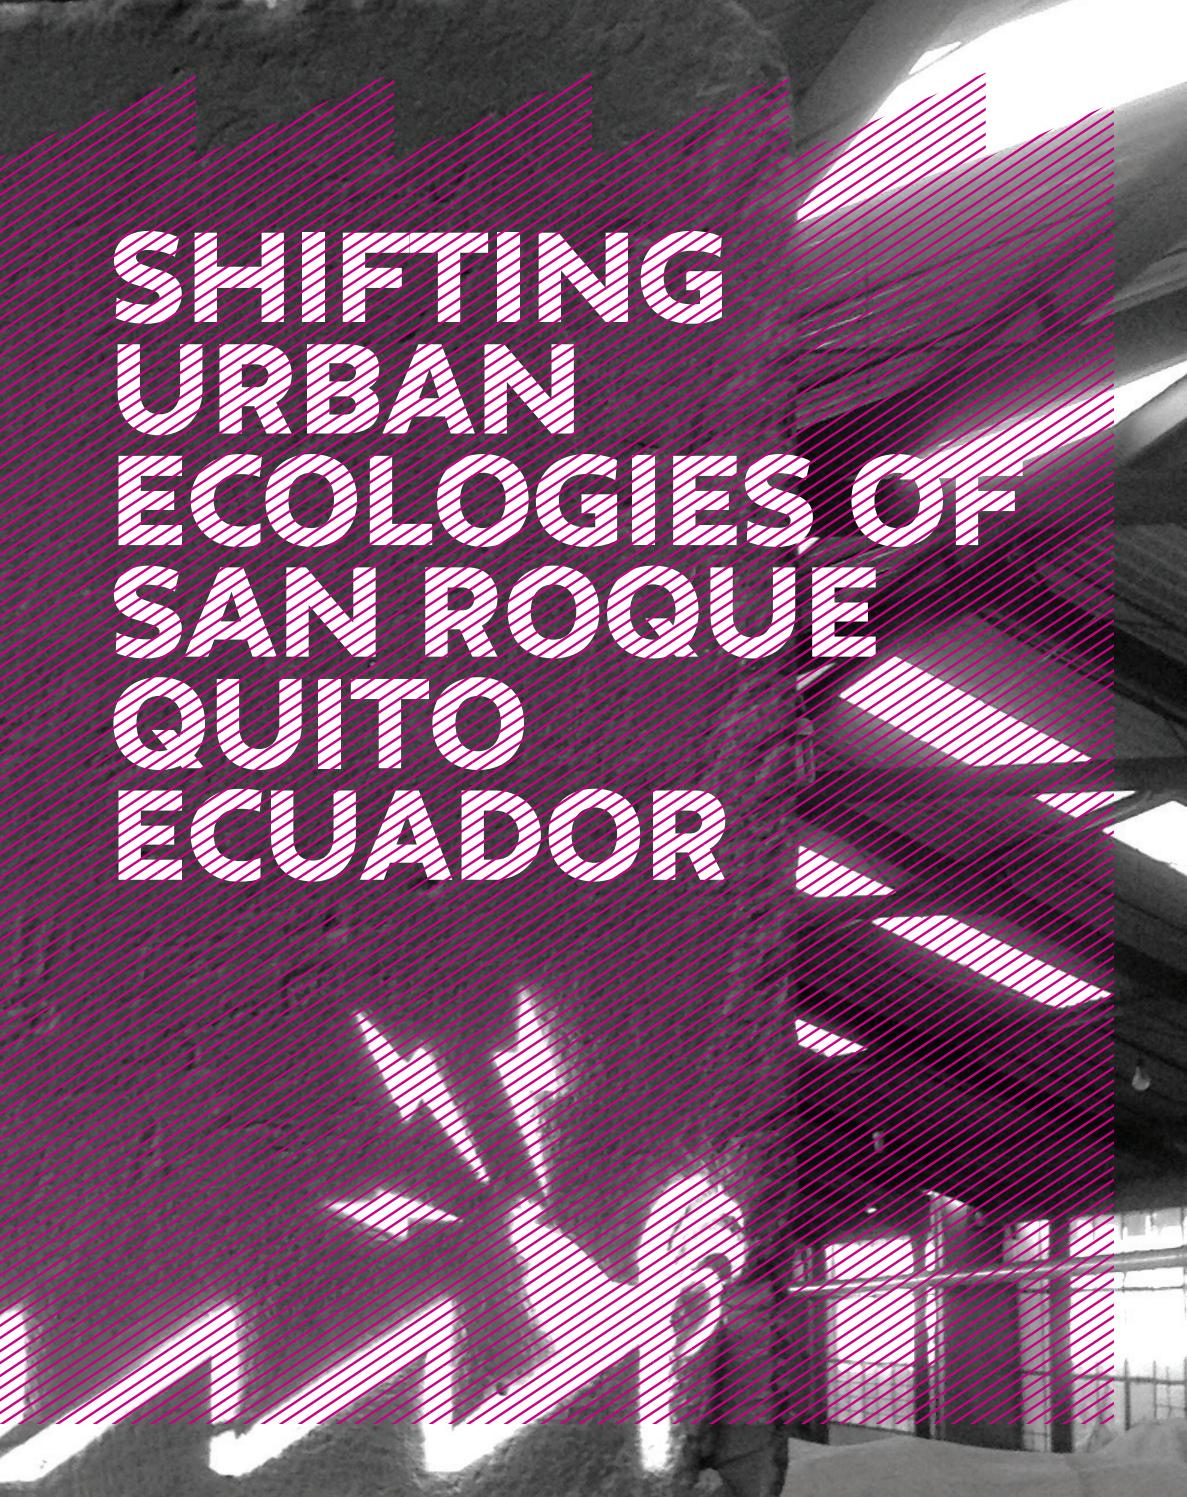 03689f9560 Shifting Urban Ecologies of San Roque Quito by The New School - issuu